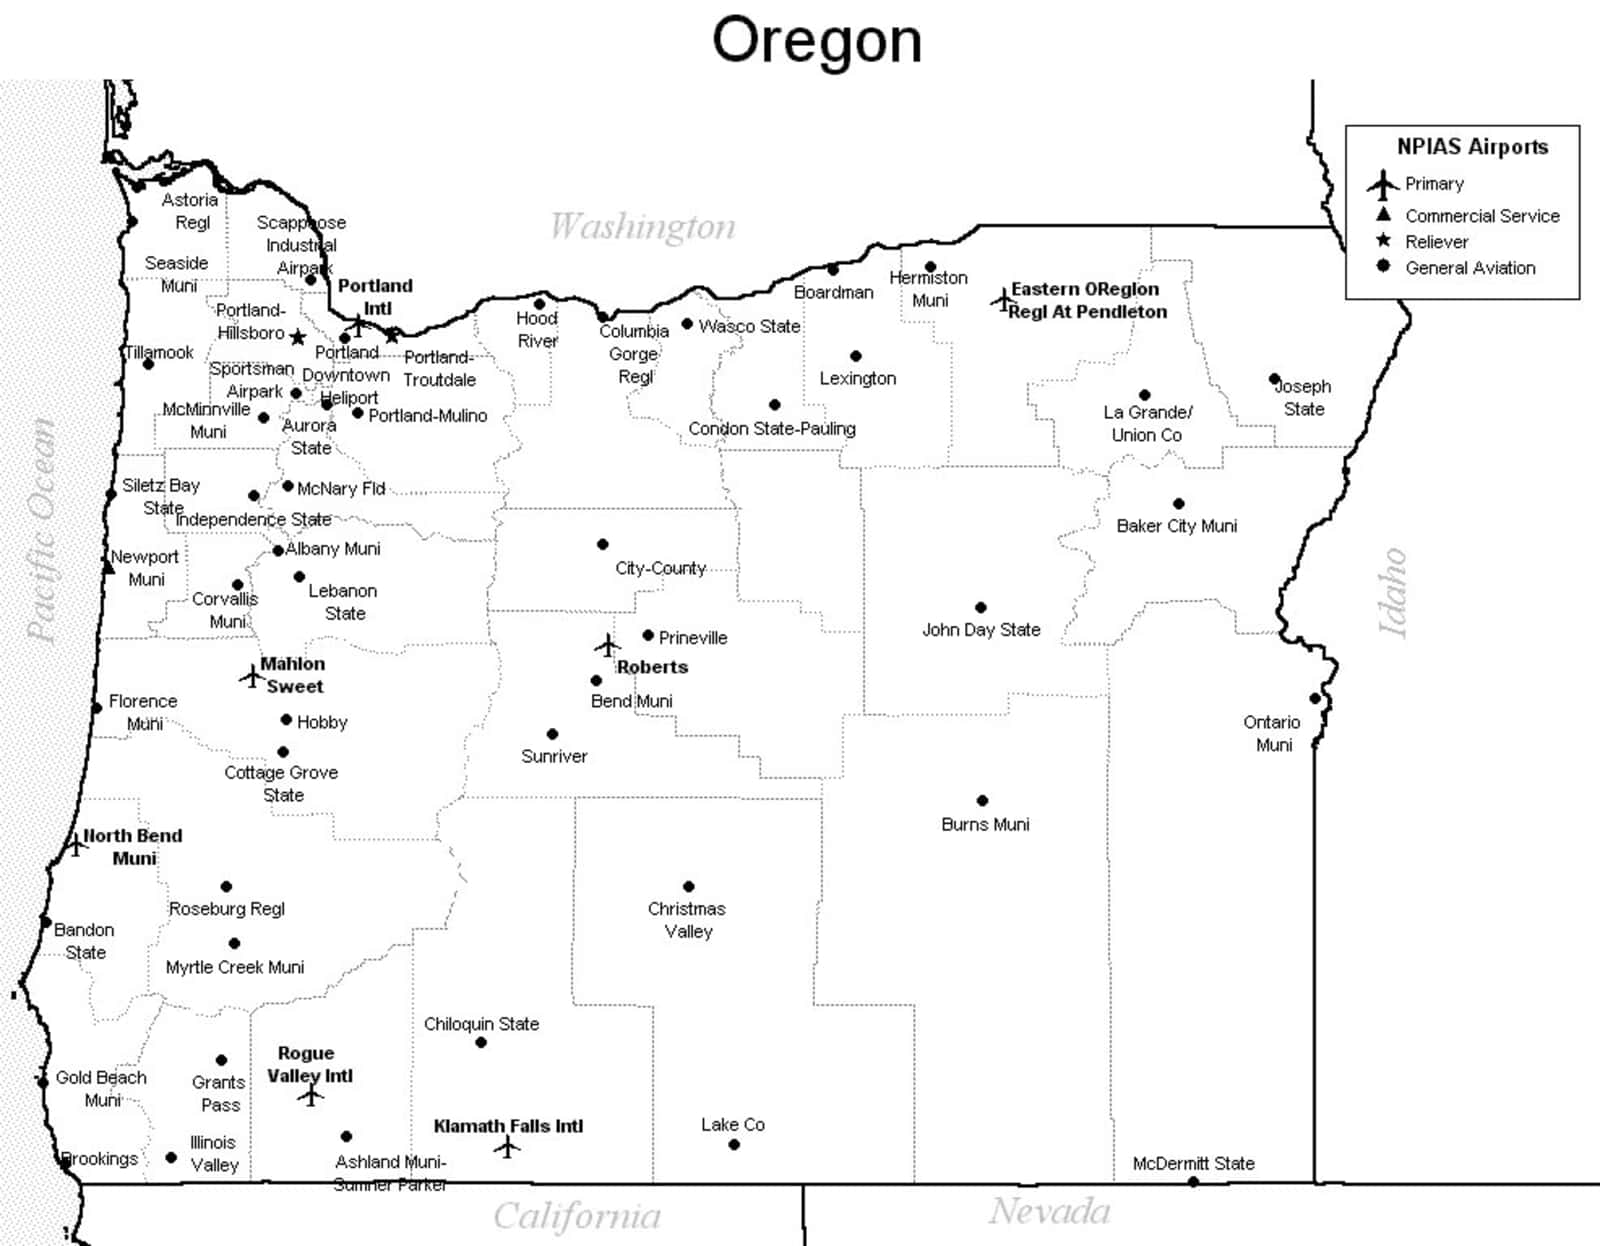 Oregon Airport Map - Oregon Airports